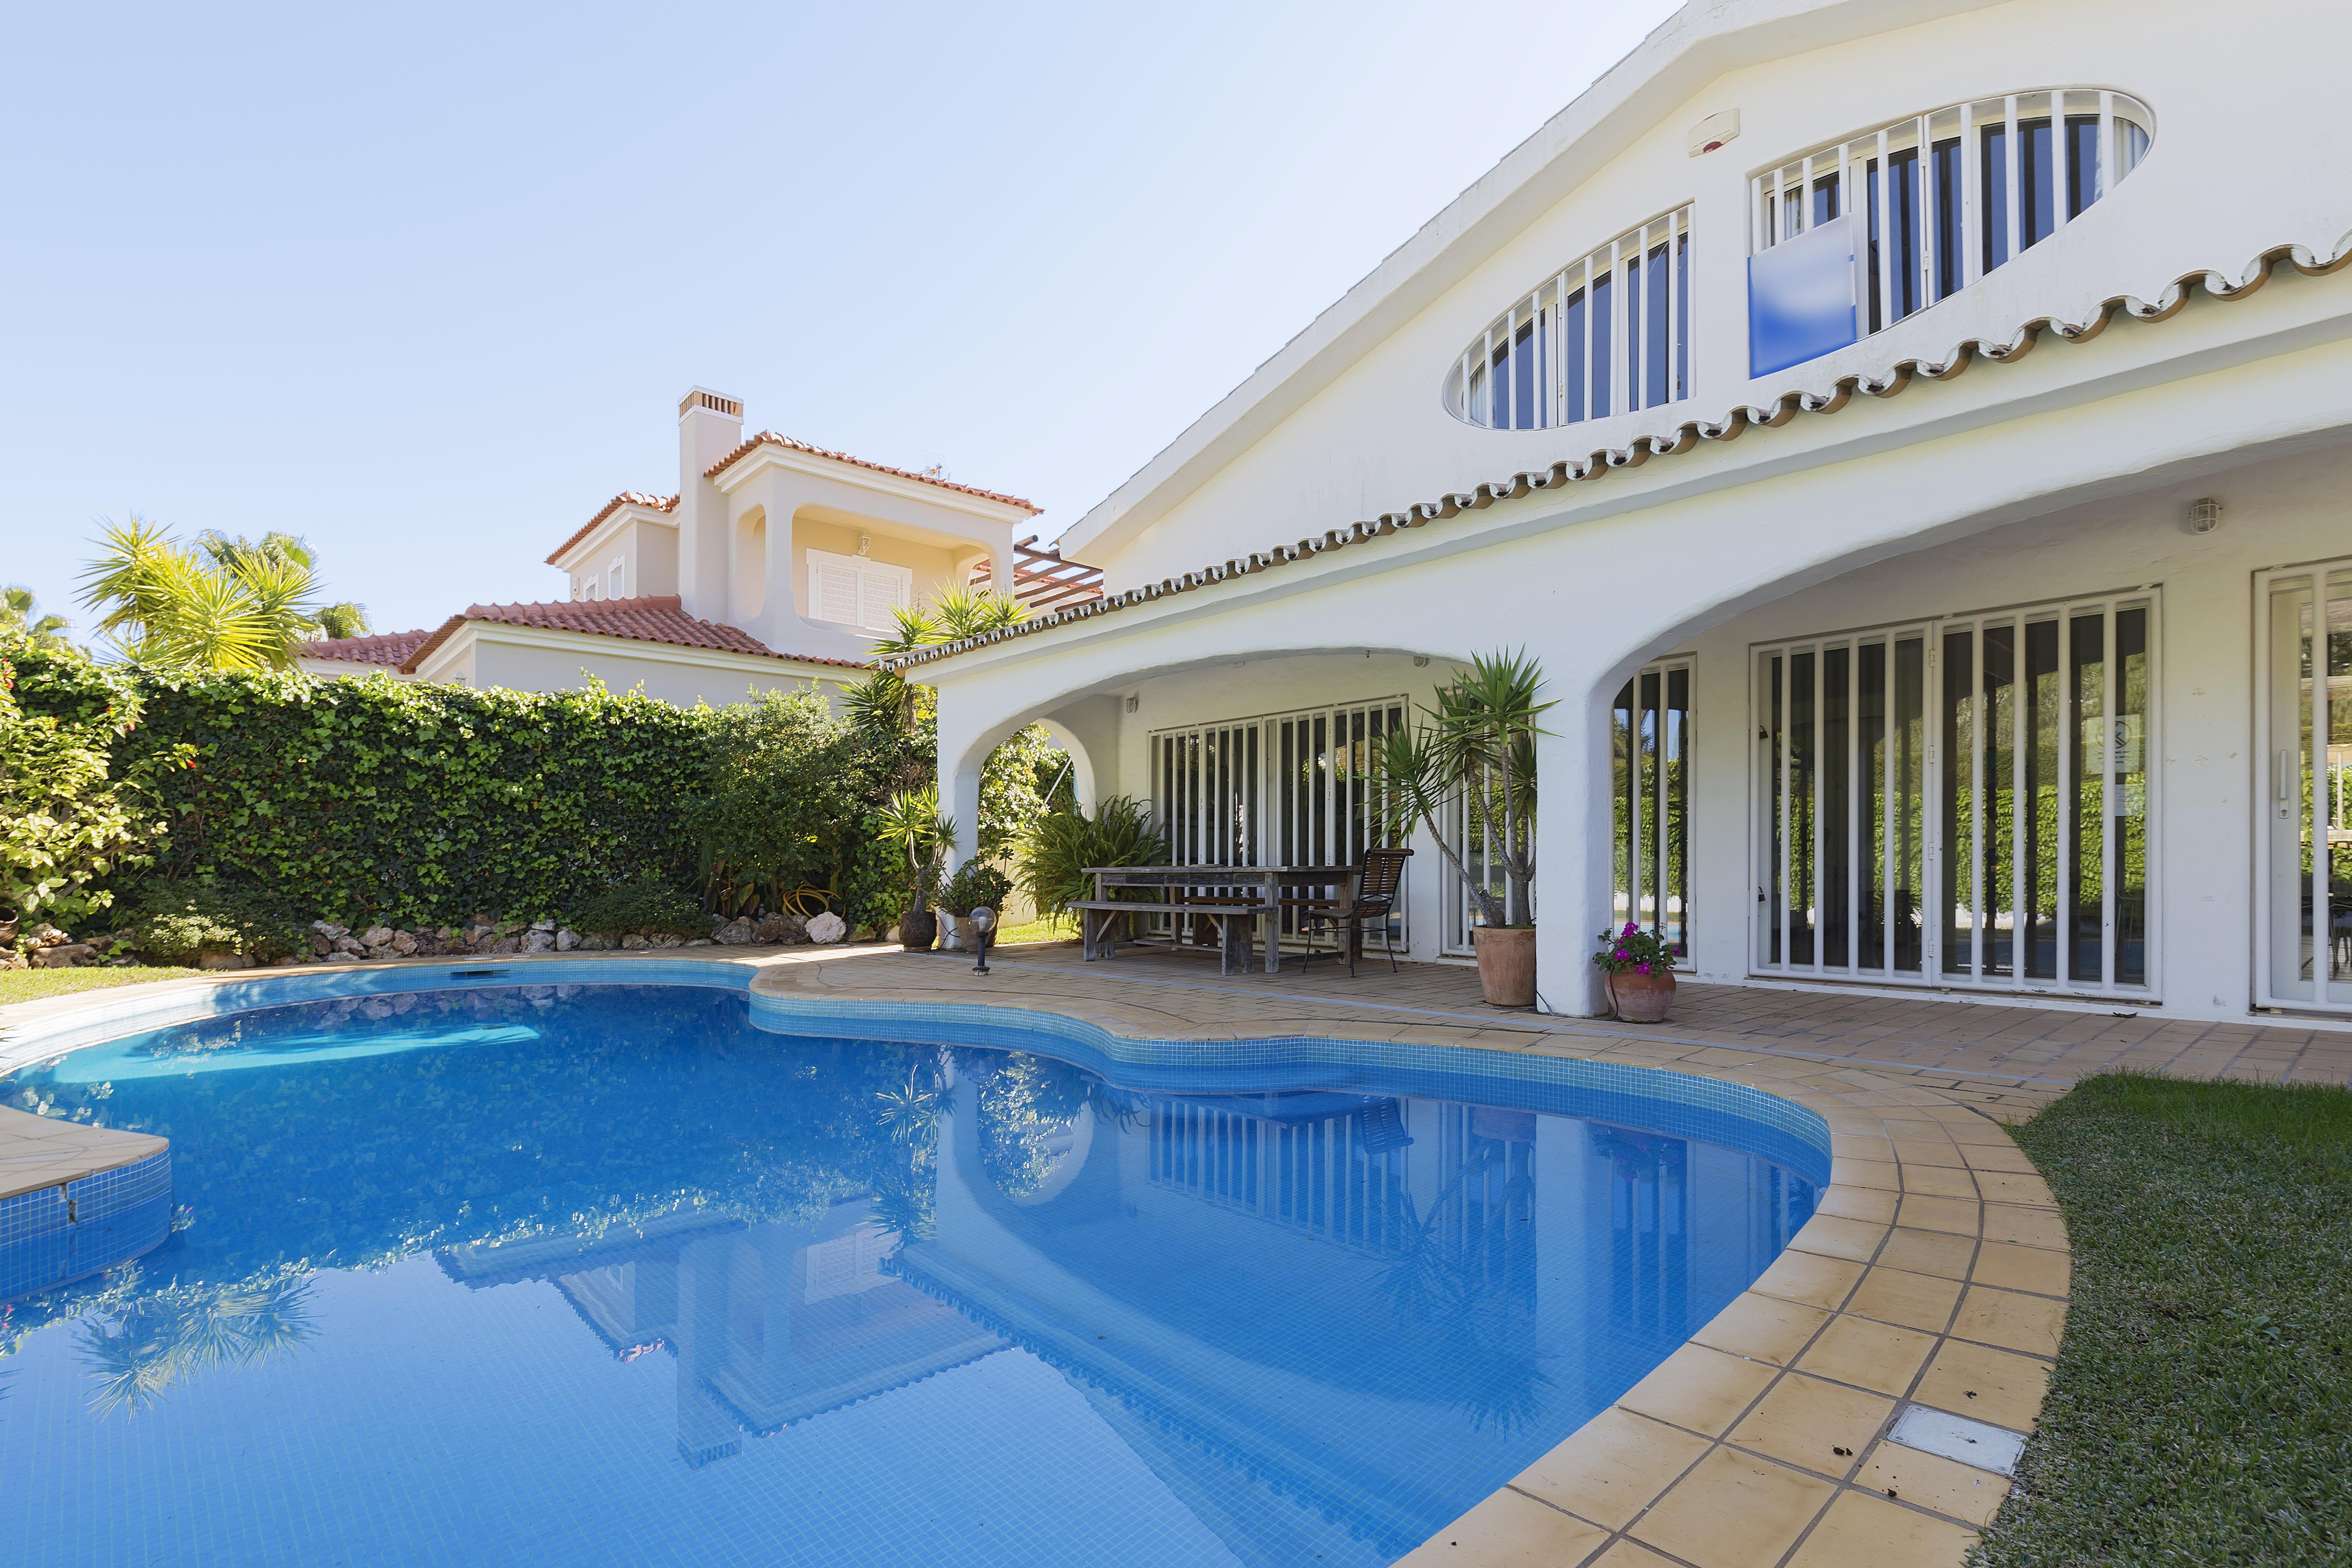 Single Family Home for Sale at Detached house, 3 bedrooms, for Sale Loule, Algarve, 8125-001 Portugal